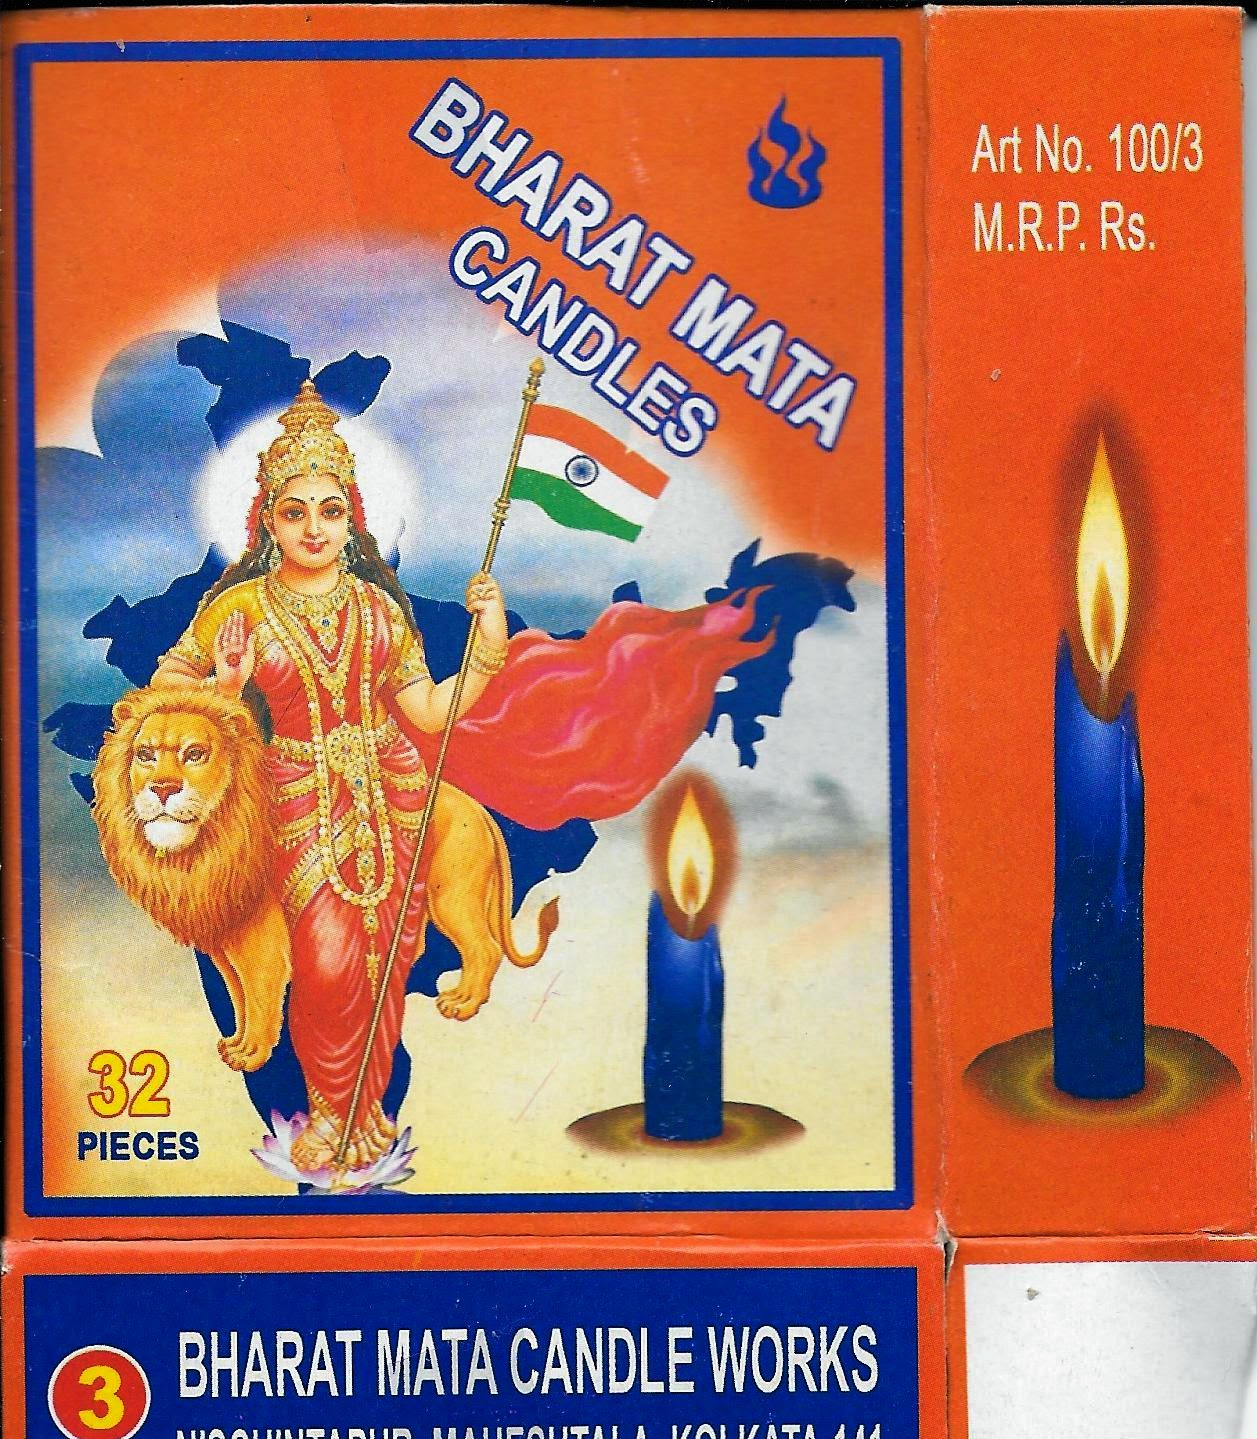 bharat mata with rss flag - photo #24